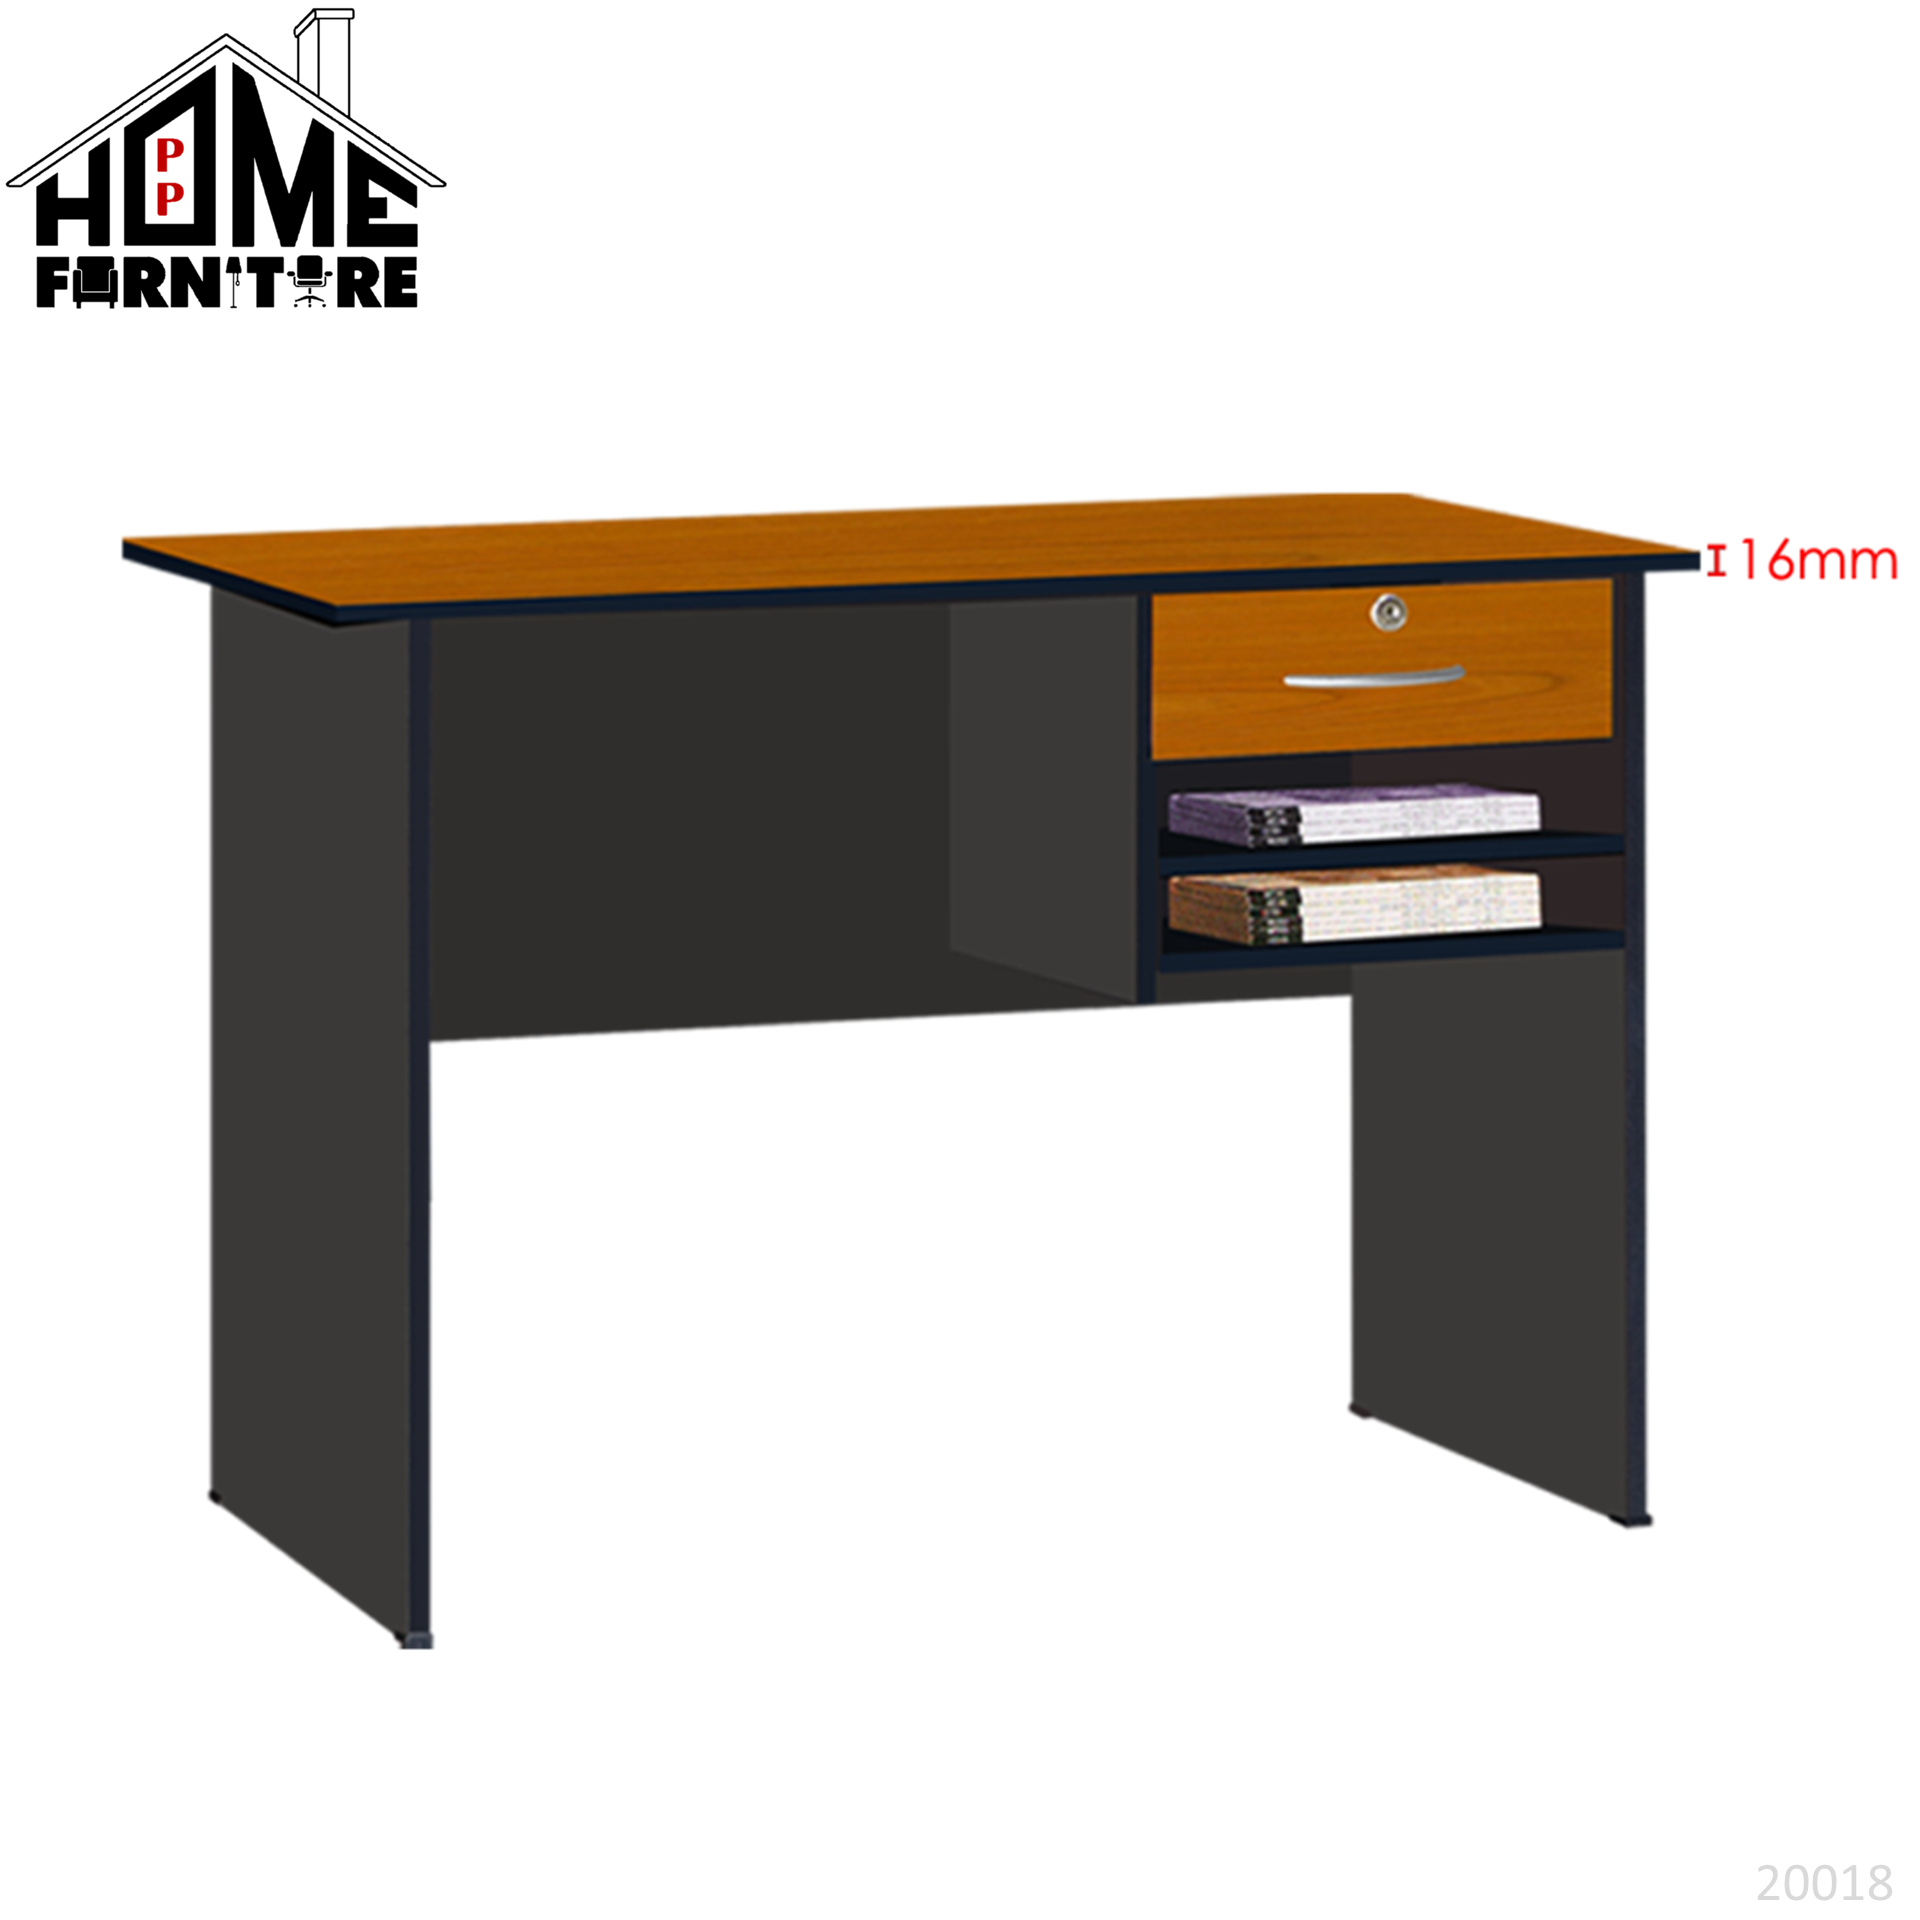 PP HOME Study Table with locker drawer/Writing table/Working table /PC table/ Student table/Home office table/Multipurpose table/Desk/Computer table/Destop/laptop/Meja belajar/Meja tulis/Meja kerja/komputer电脑桌/书桌/工作桌/读书桌/办公桌20018